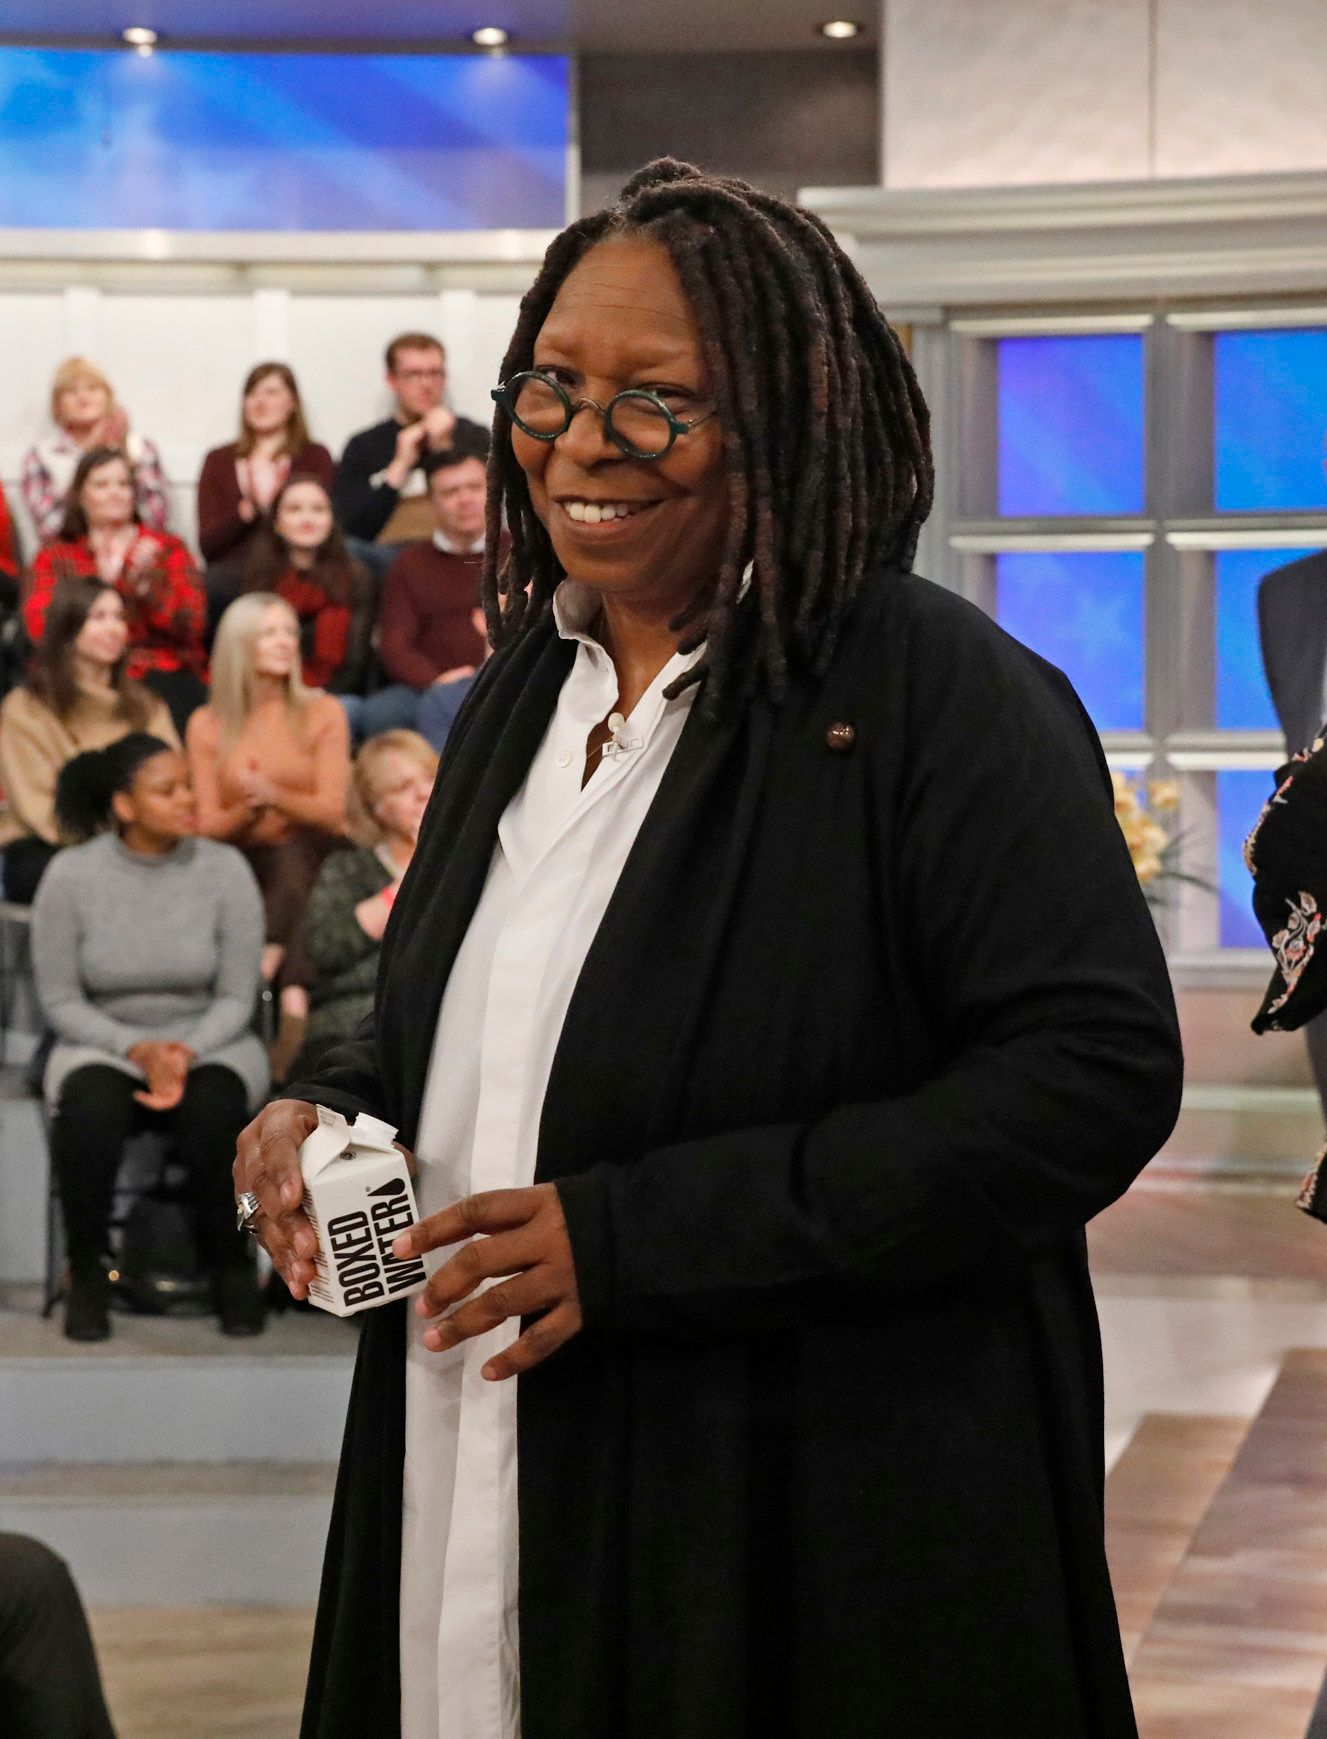 Whoopi Goldberg's Surprise Visit After Health Scare Brings Tears On 'The View'